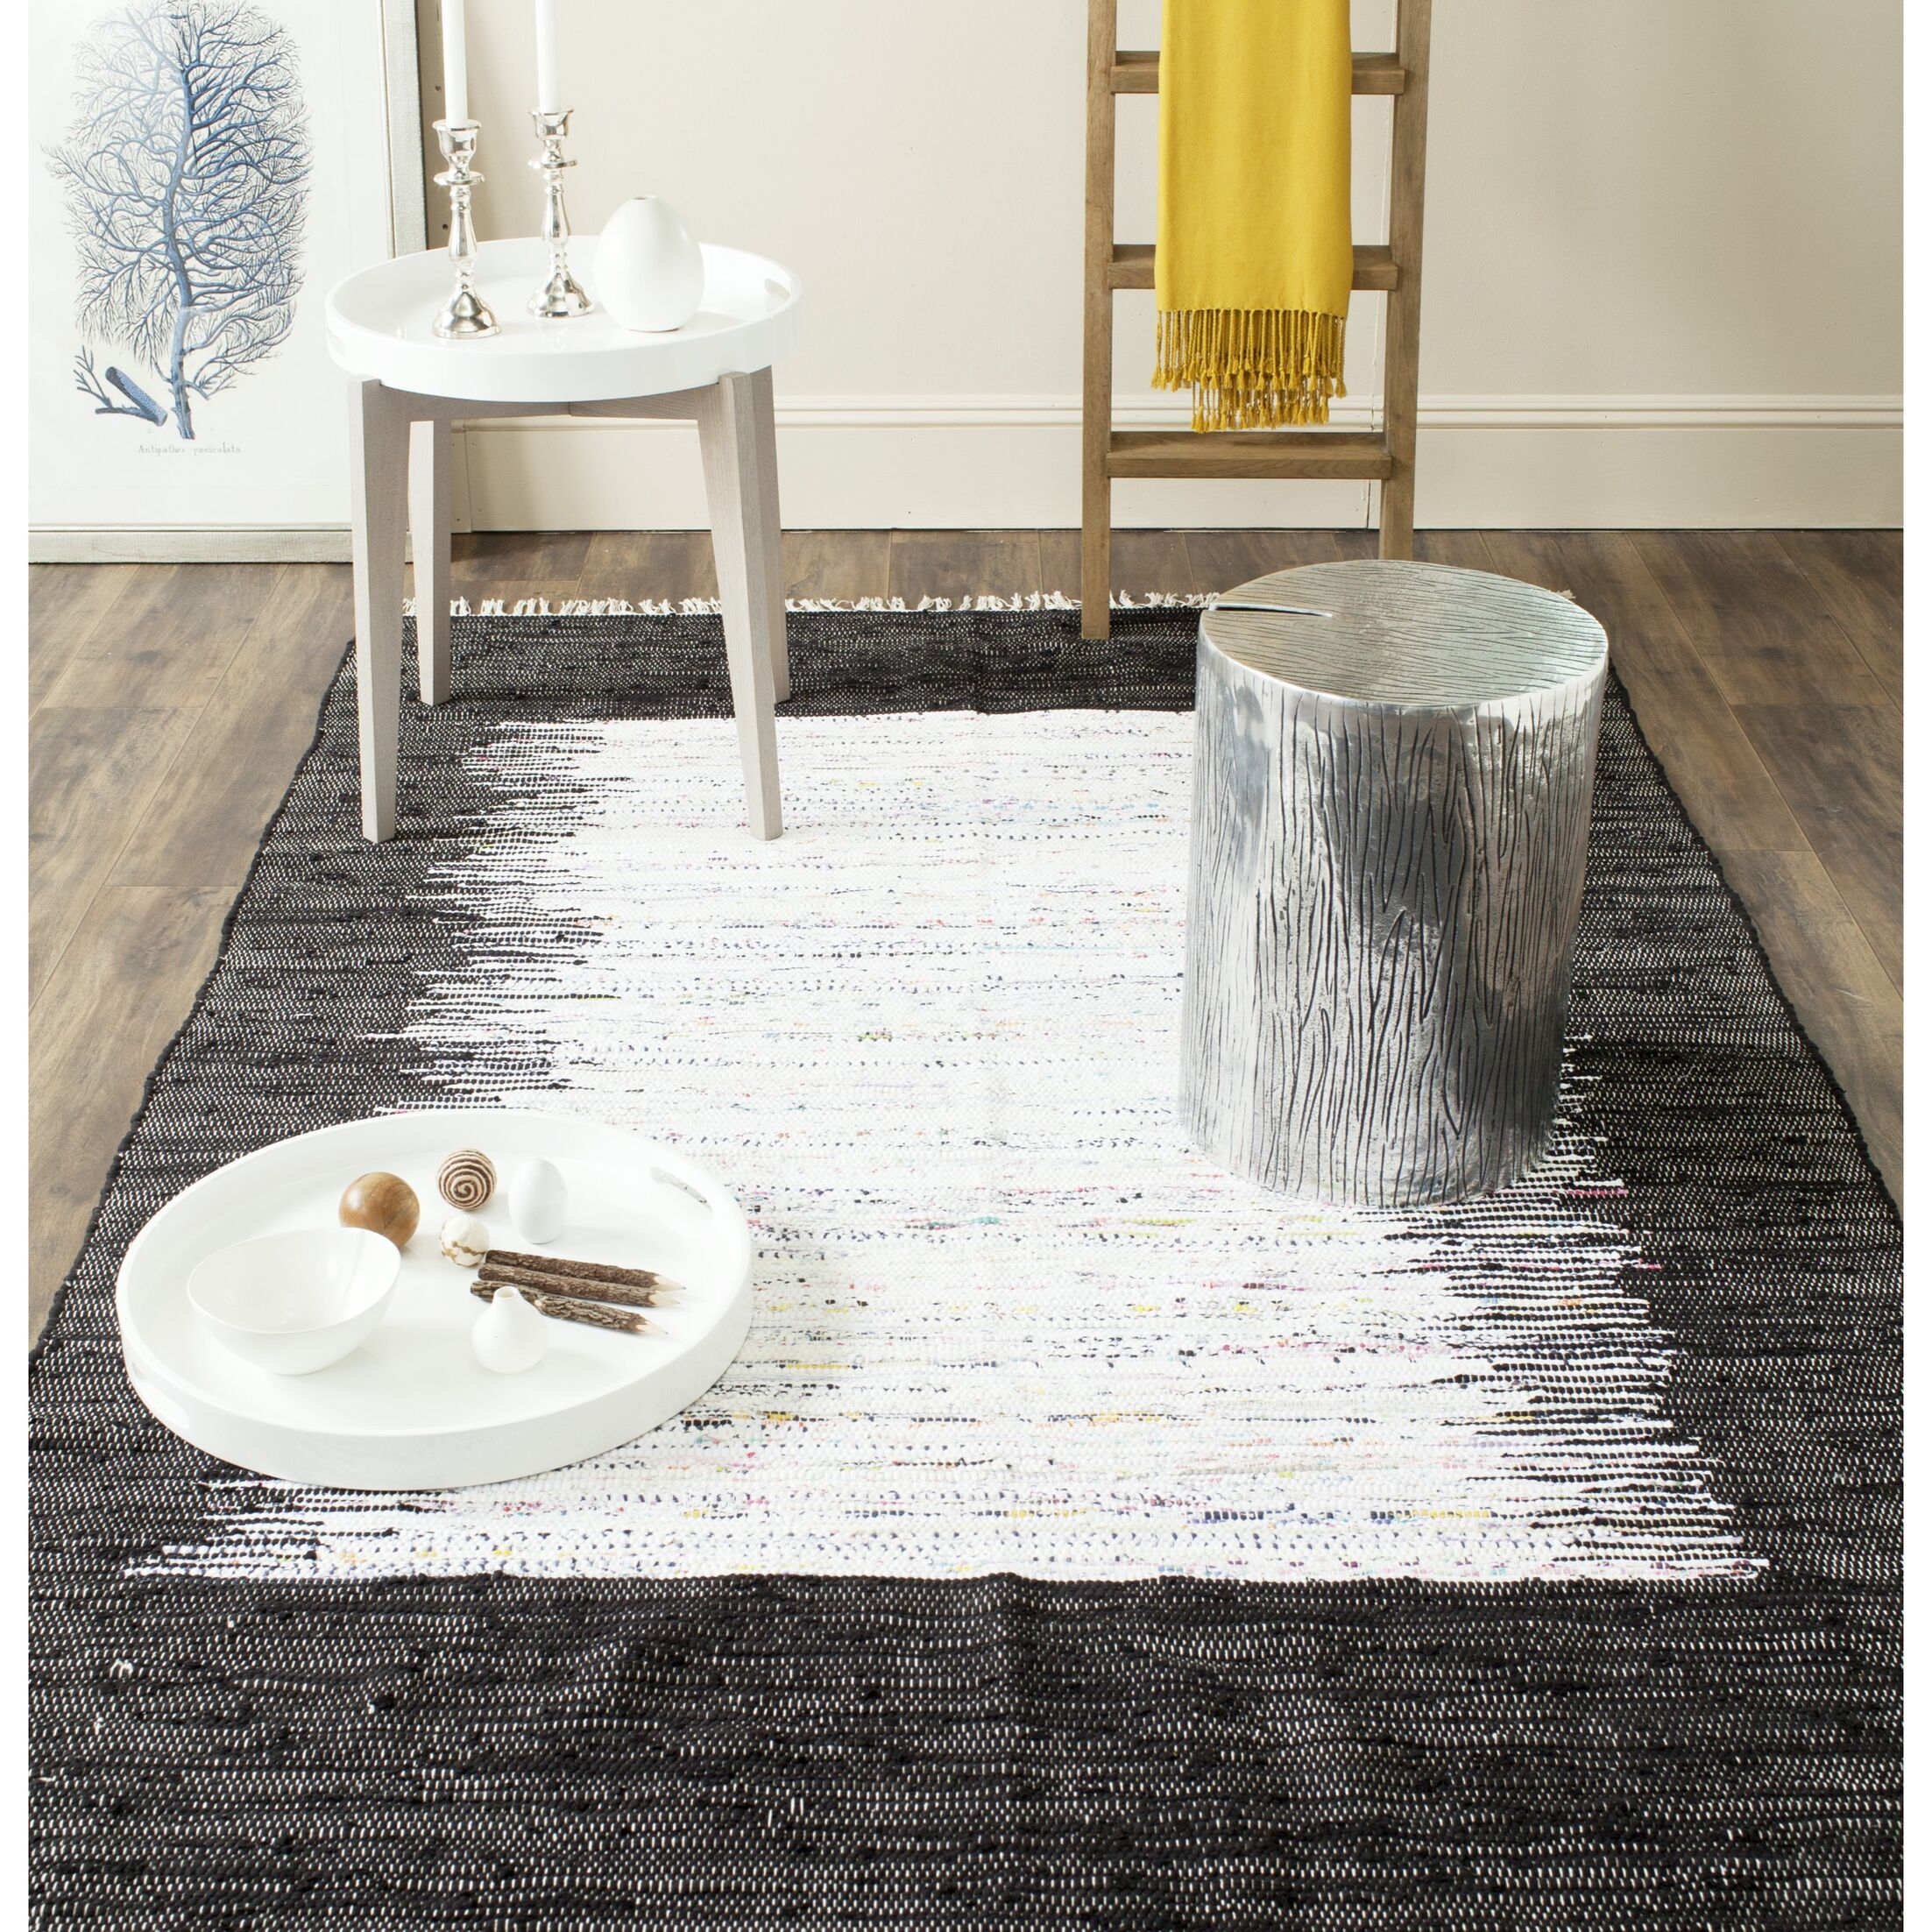 Ona Hand-Woven Cotton White/Black Area Rug Rug Size: Rectangle 6' x 9'